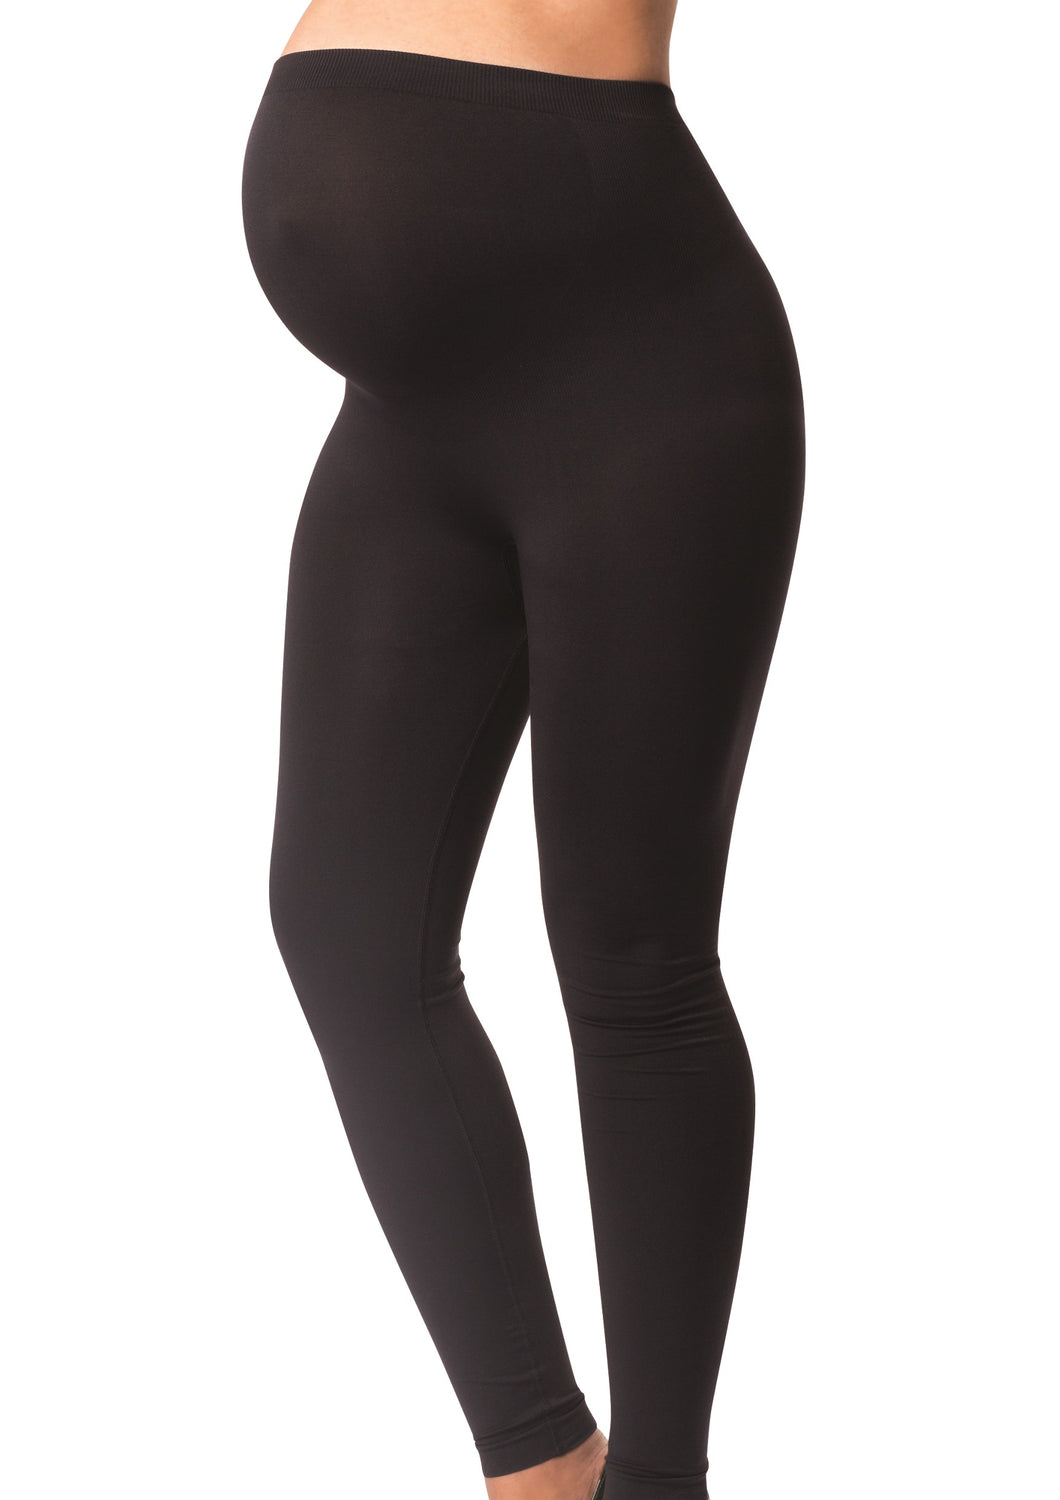 Maternity Support Leggings